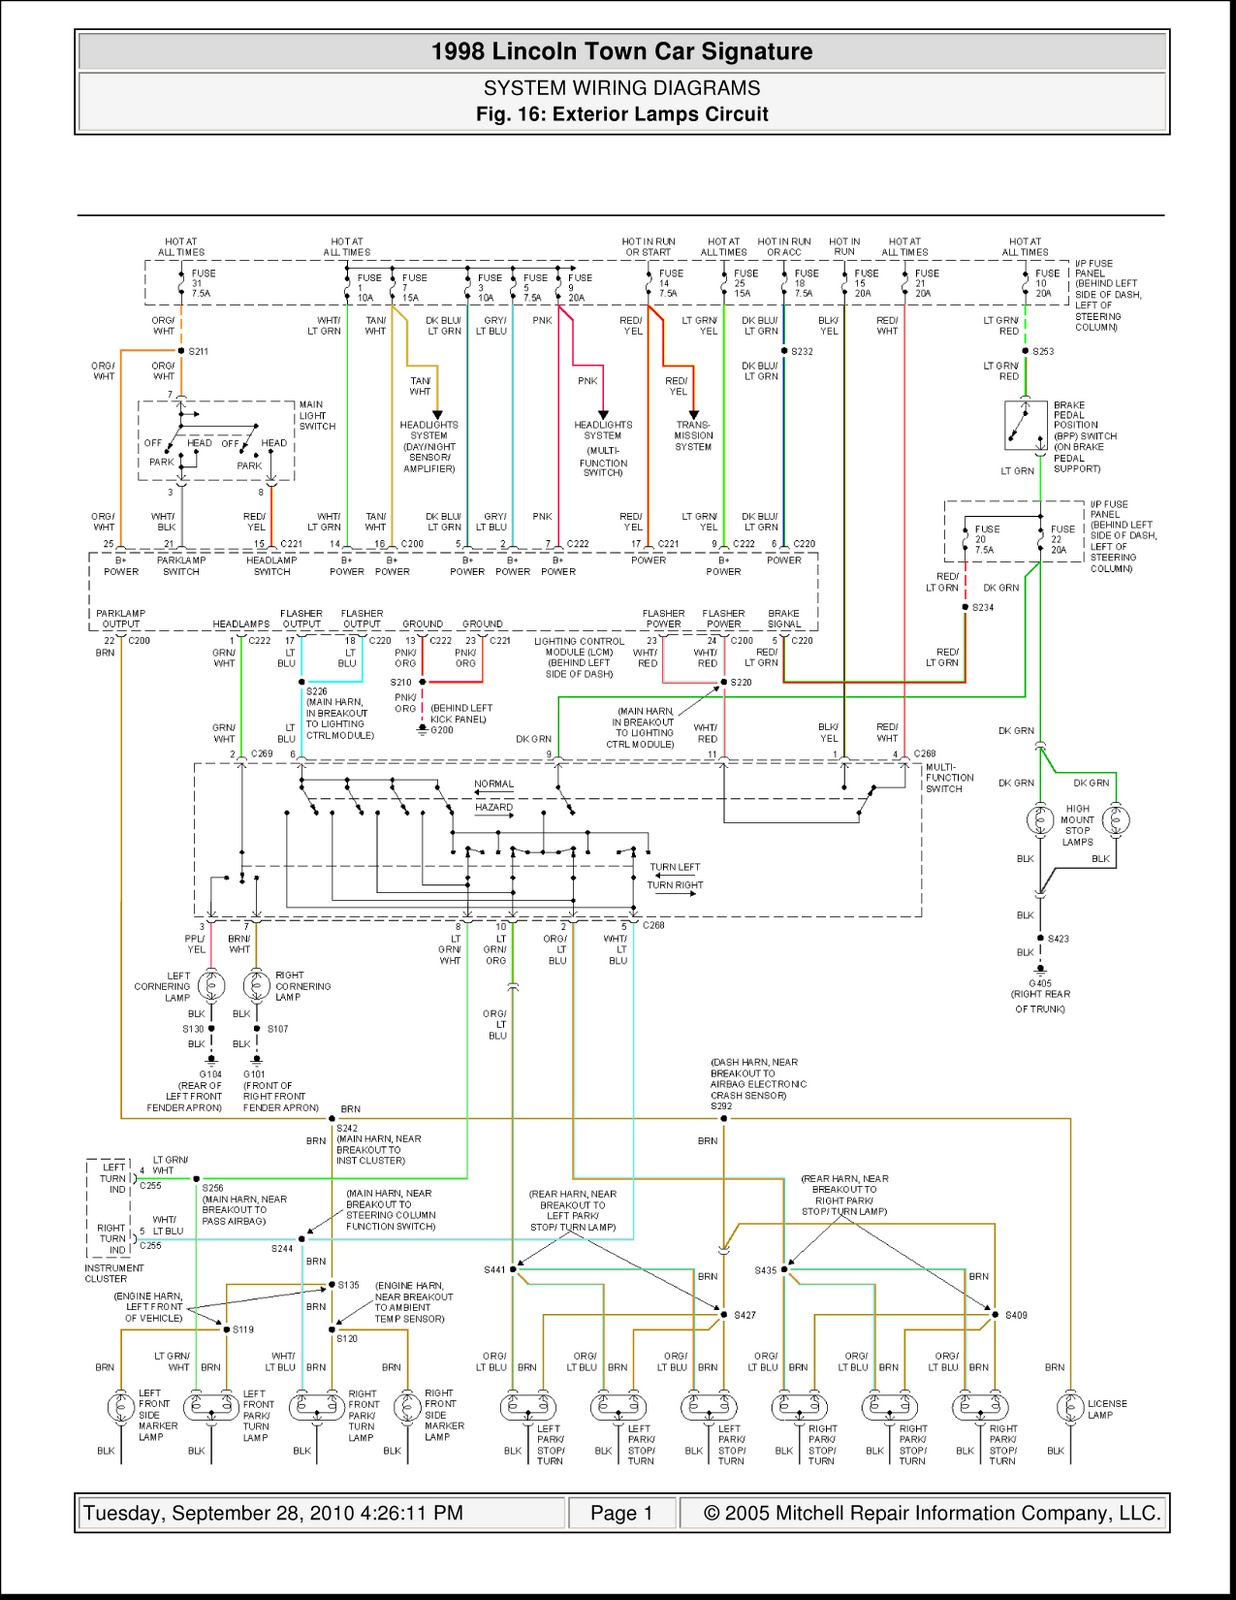 1998 lincoln town car signature system wiring diagrams [ 1236 x 1600 Pixel ]